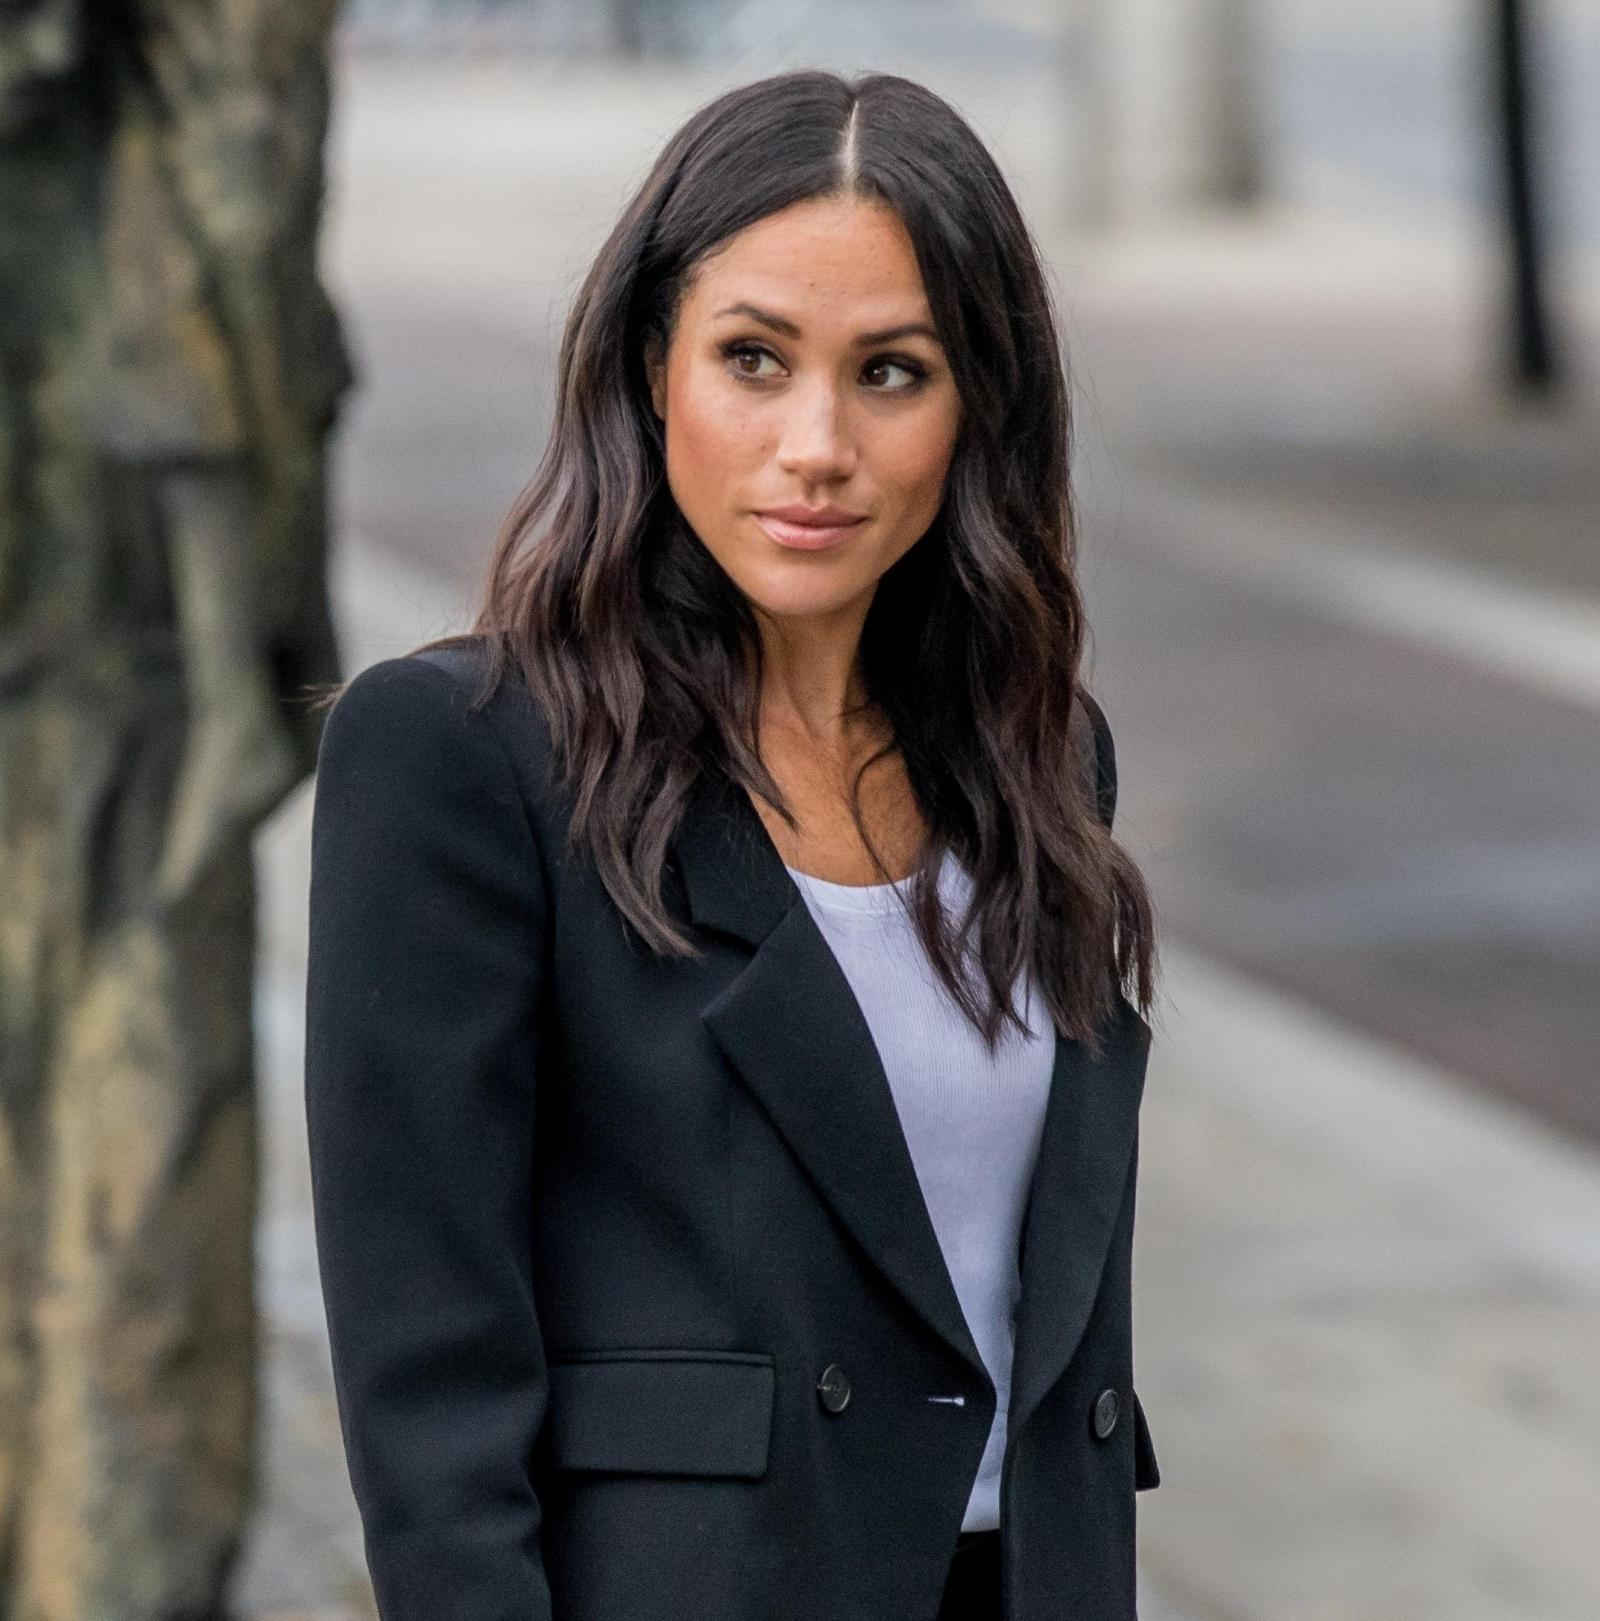 Meghan Markle awarded a new title